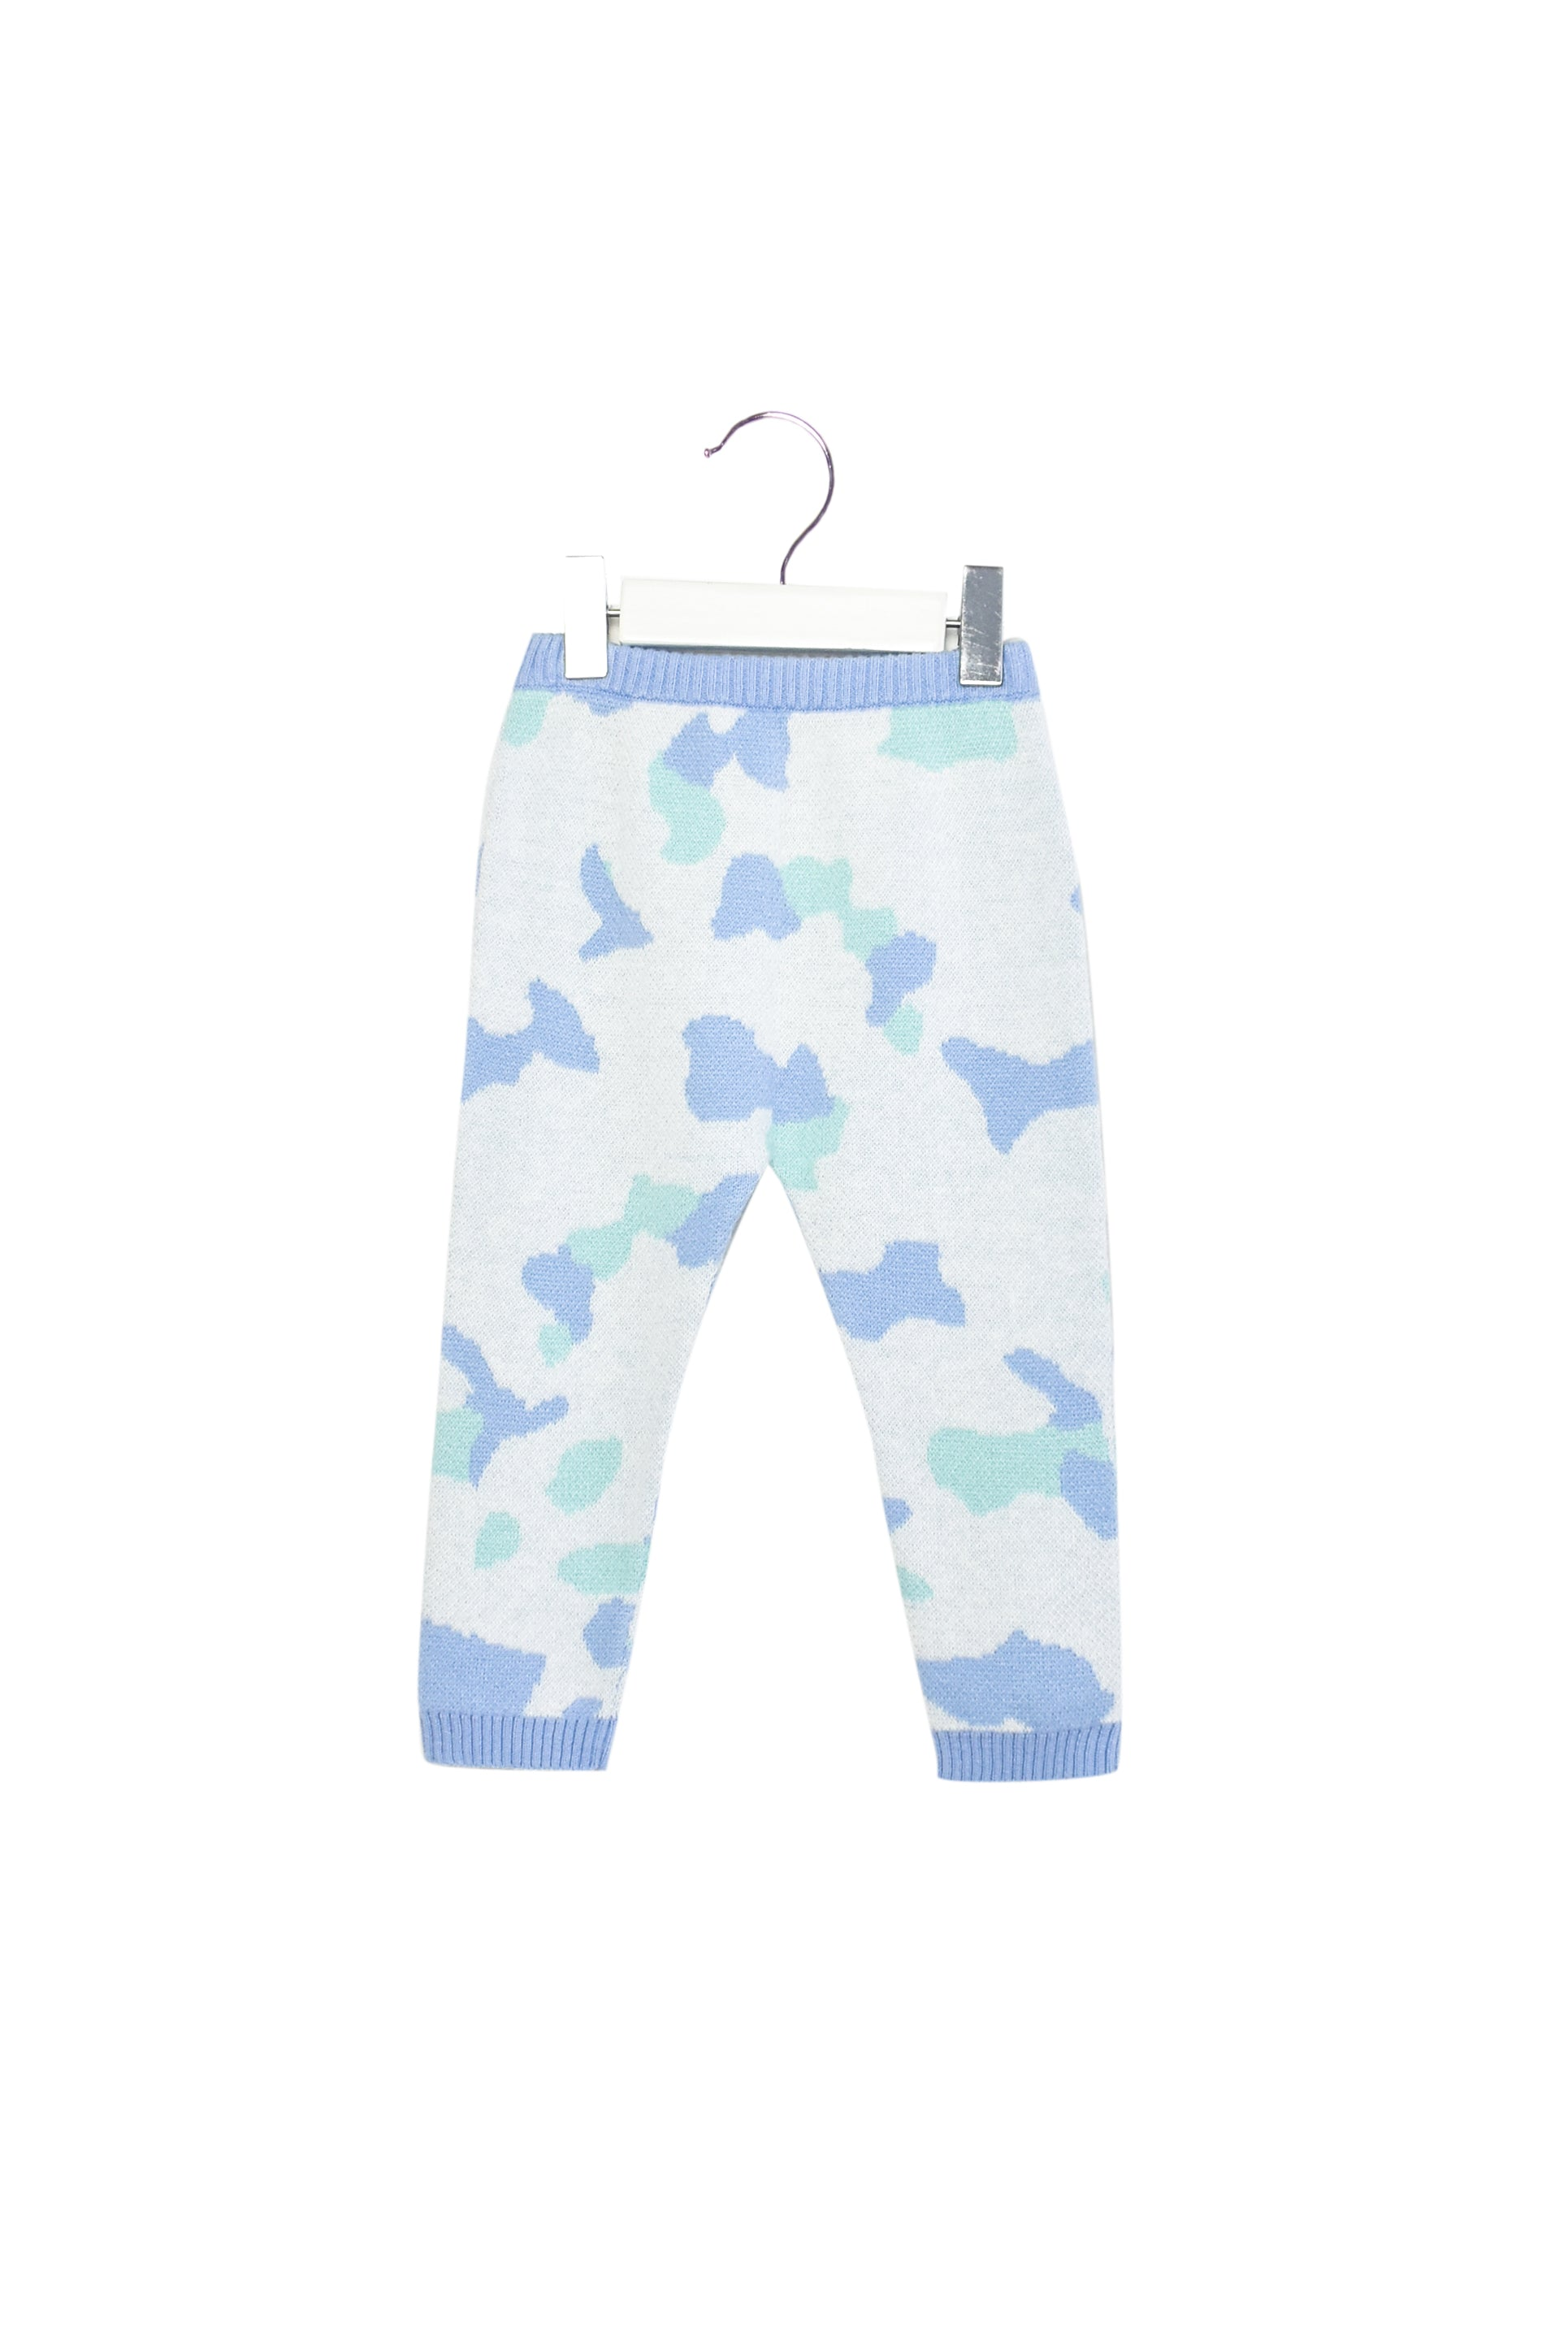 10011748 Atelier Child Baby ~ Pants 6-12M at Retykle